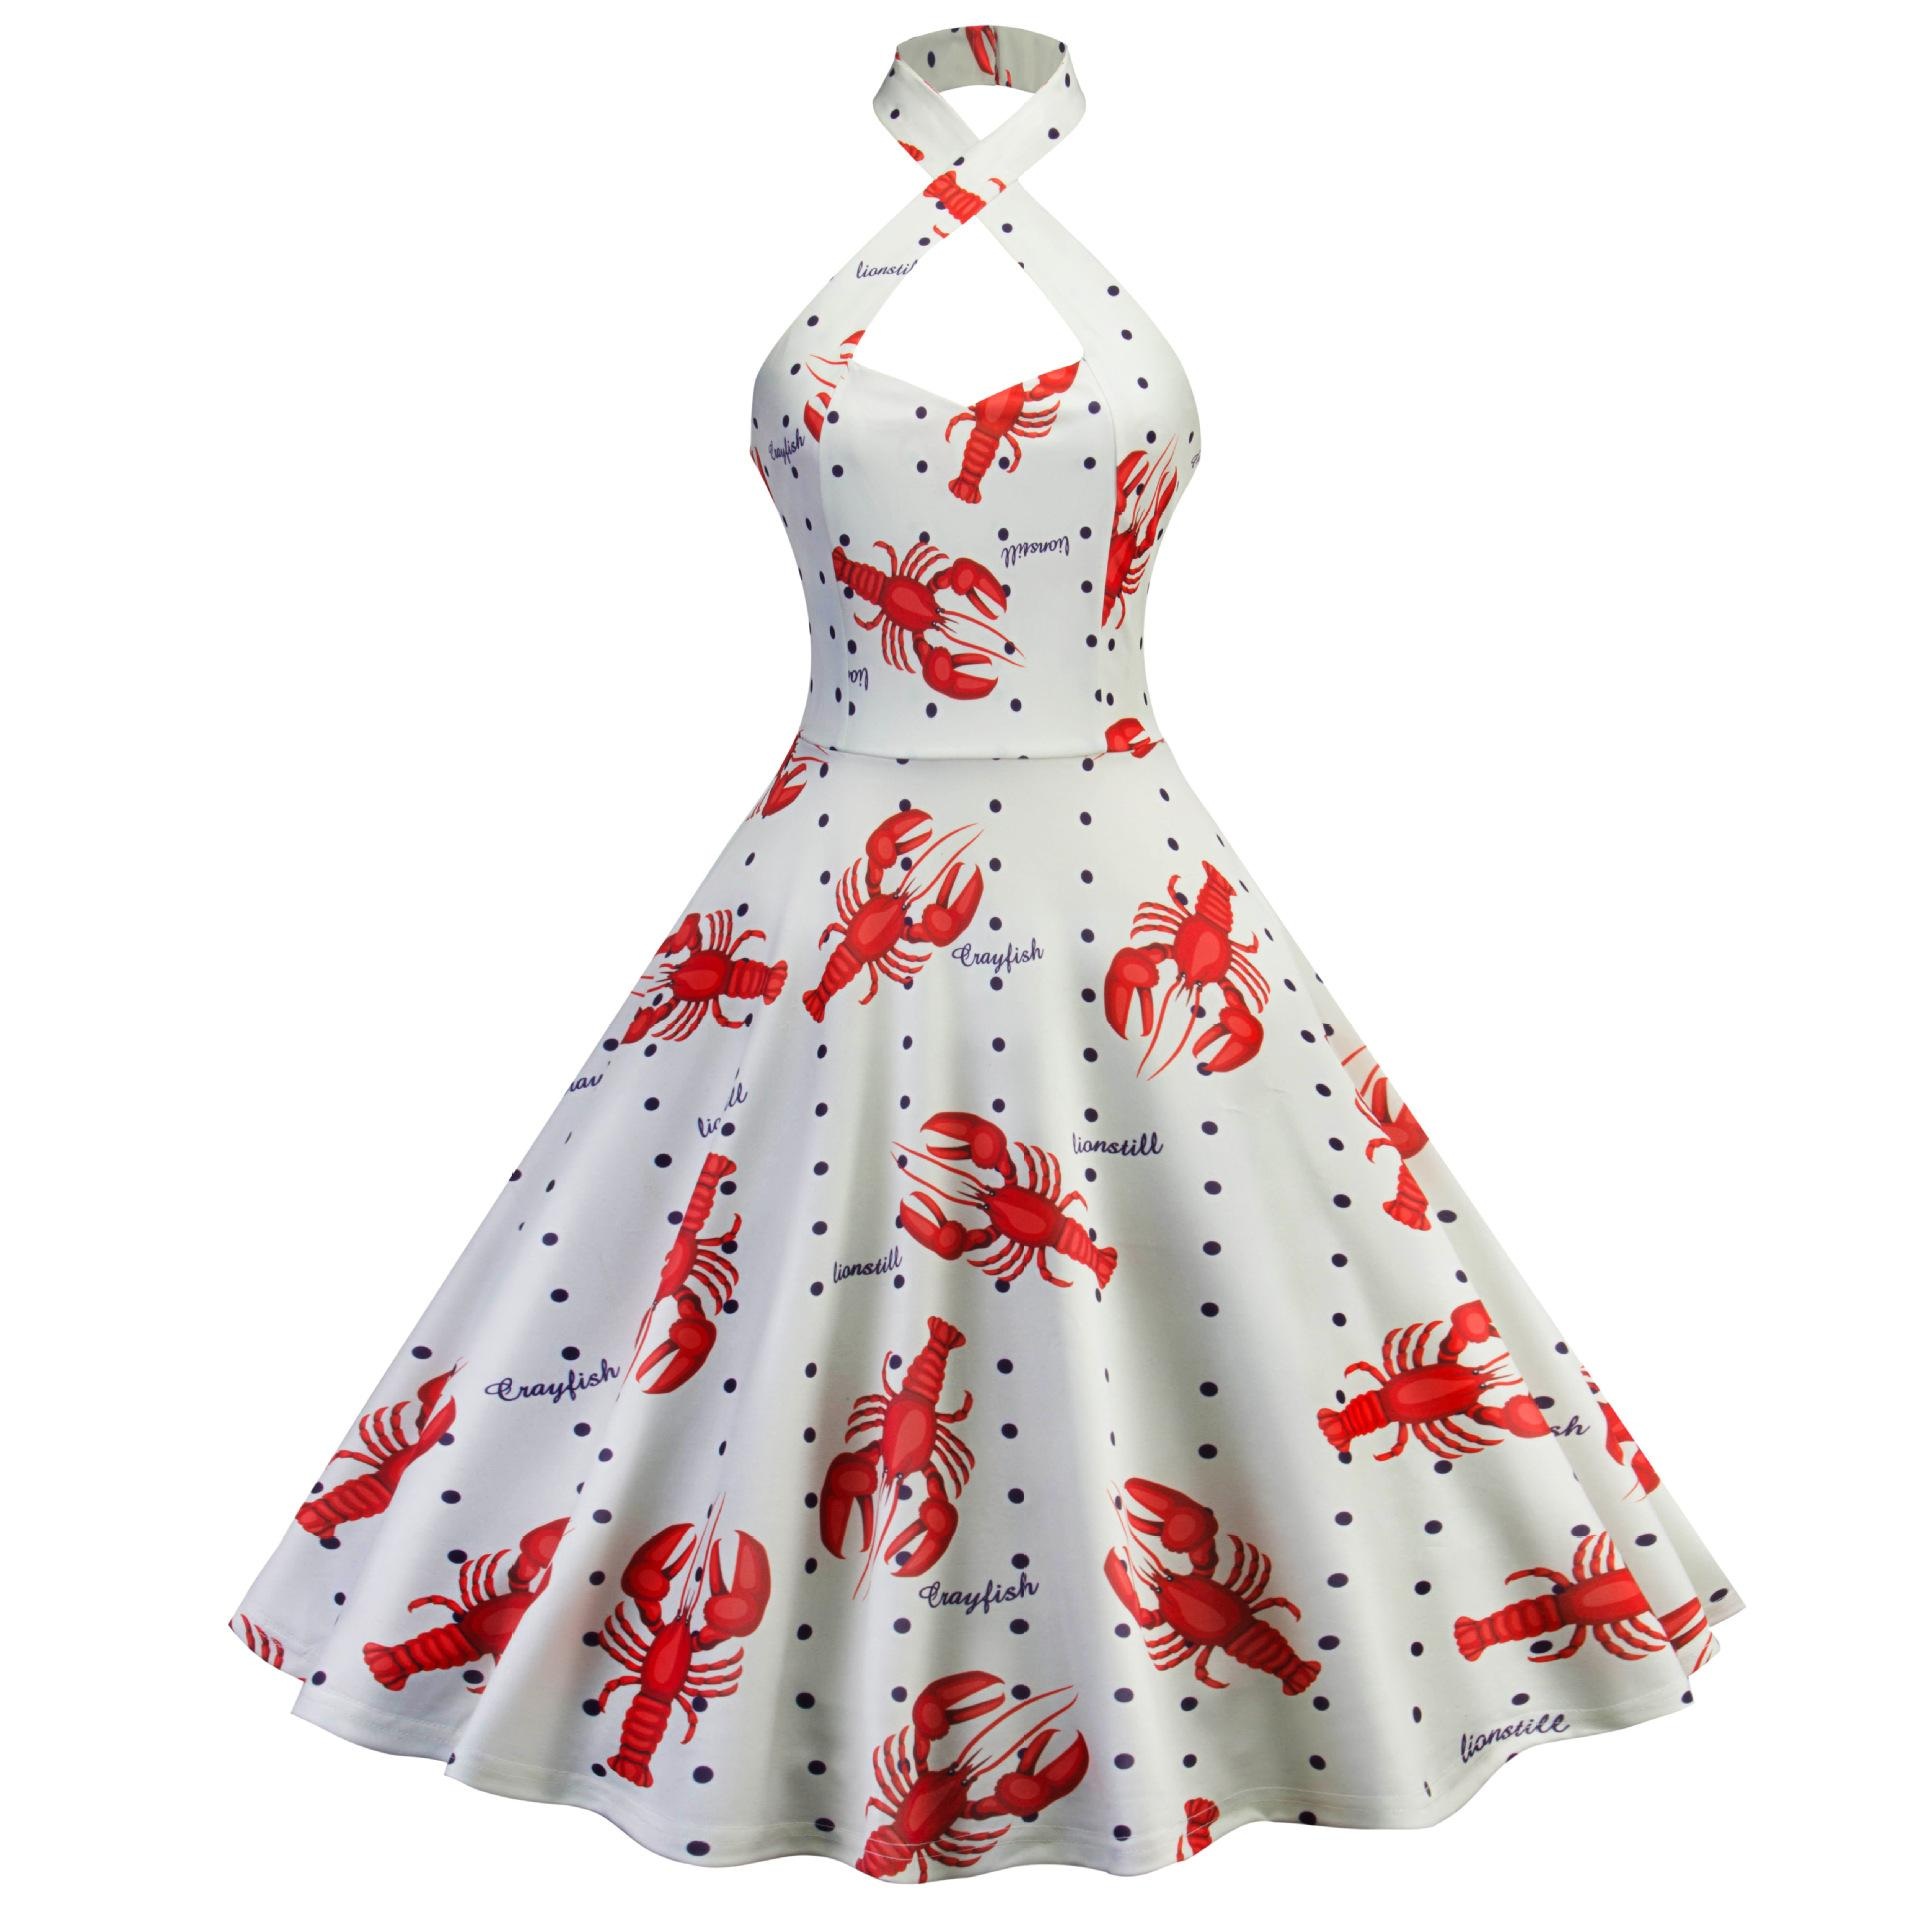 4fa1c4415fe1b Lobster Printed Robe Femme Vintage 50s Rockabilly Dress 60s Pinup Elegant  Party Halter 2018 Summer Dresses For Women Big Swing Casual Dress Chiffon  Dresses ...